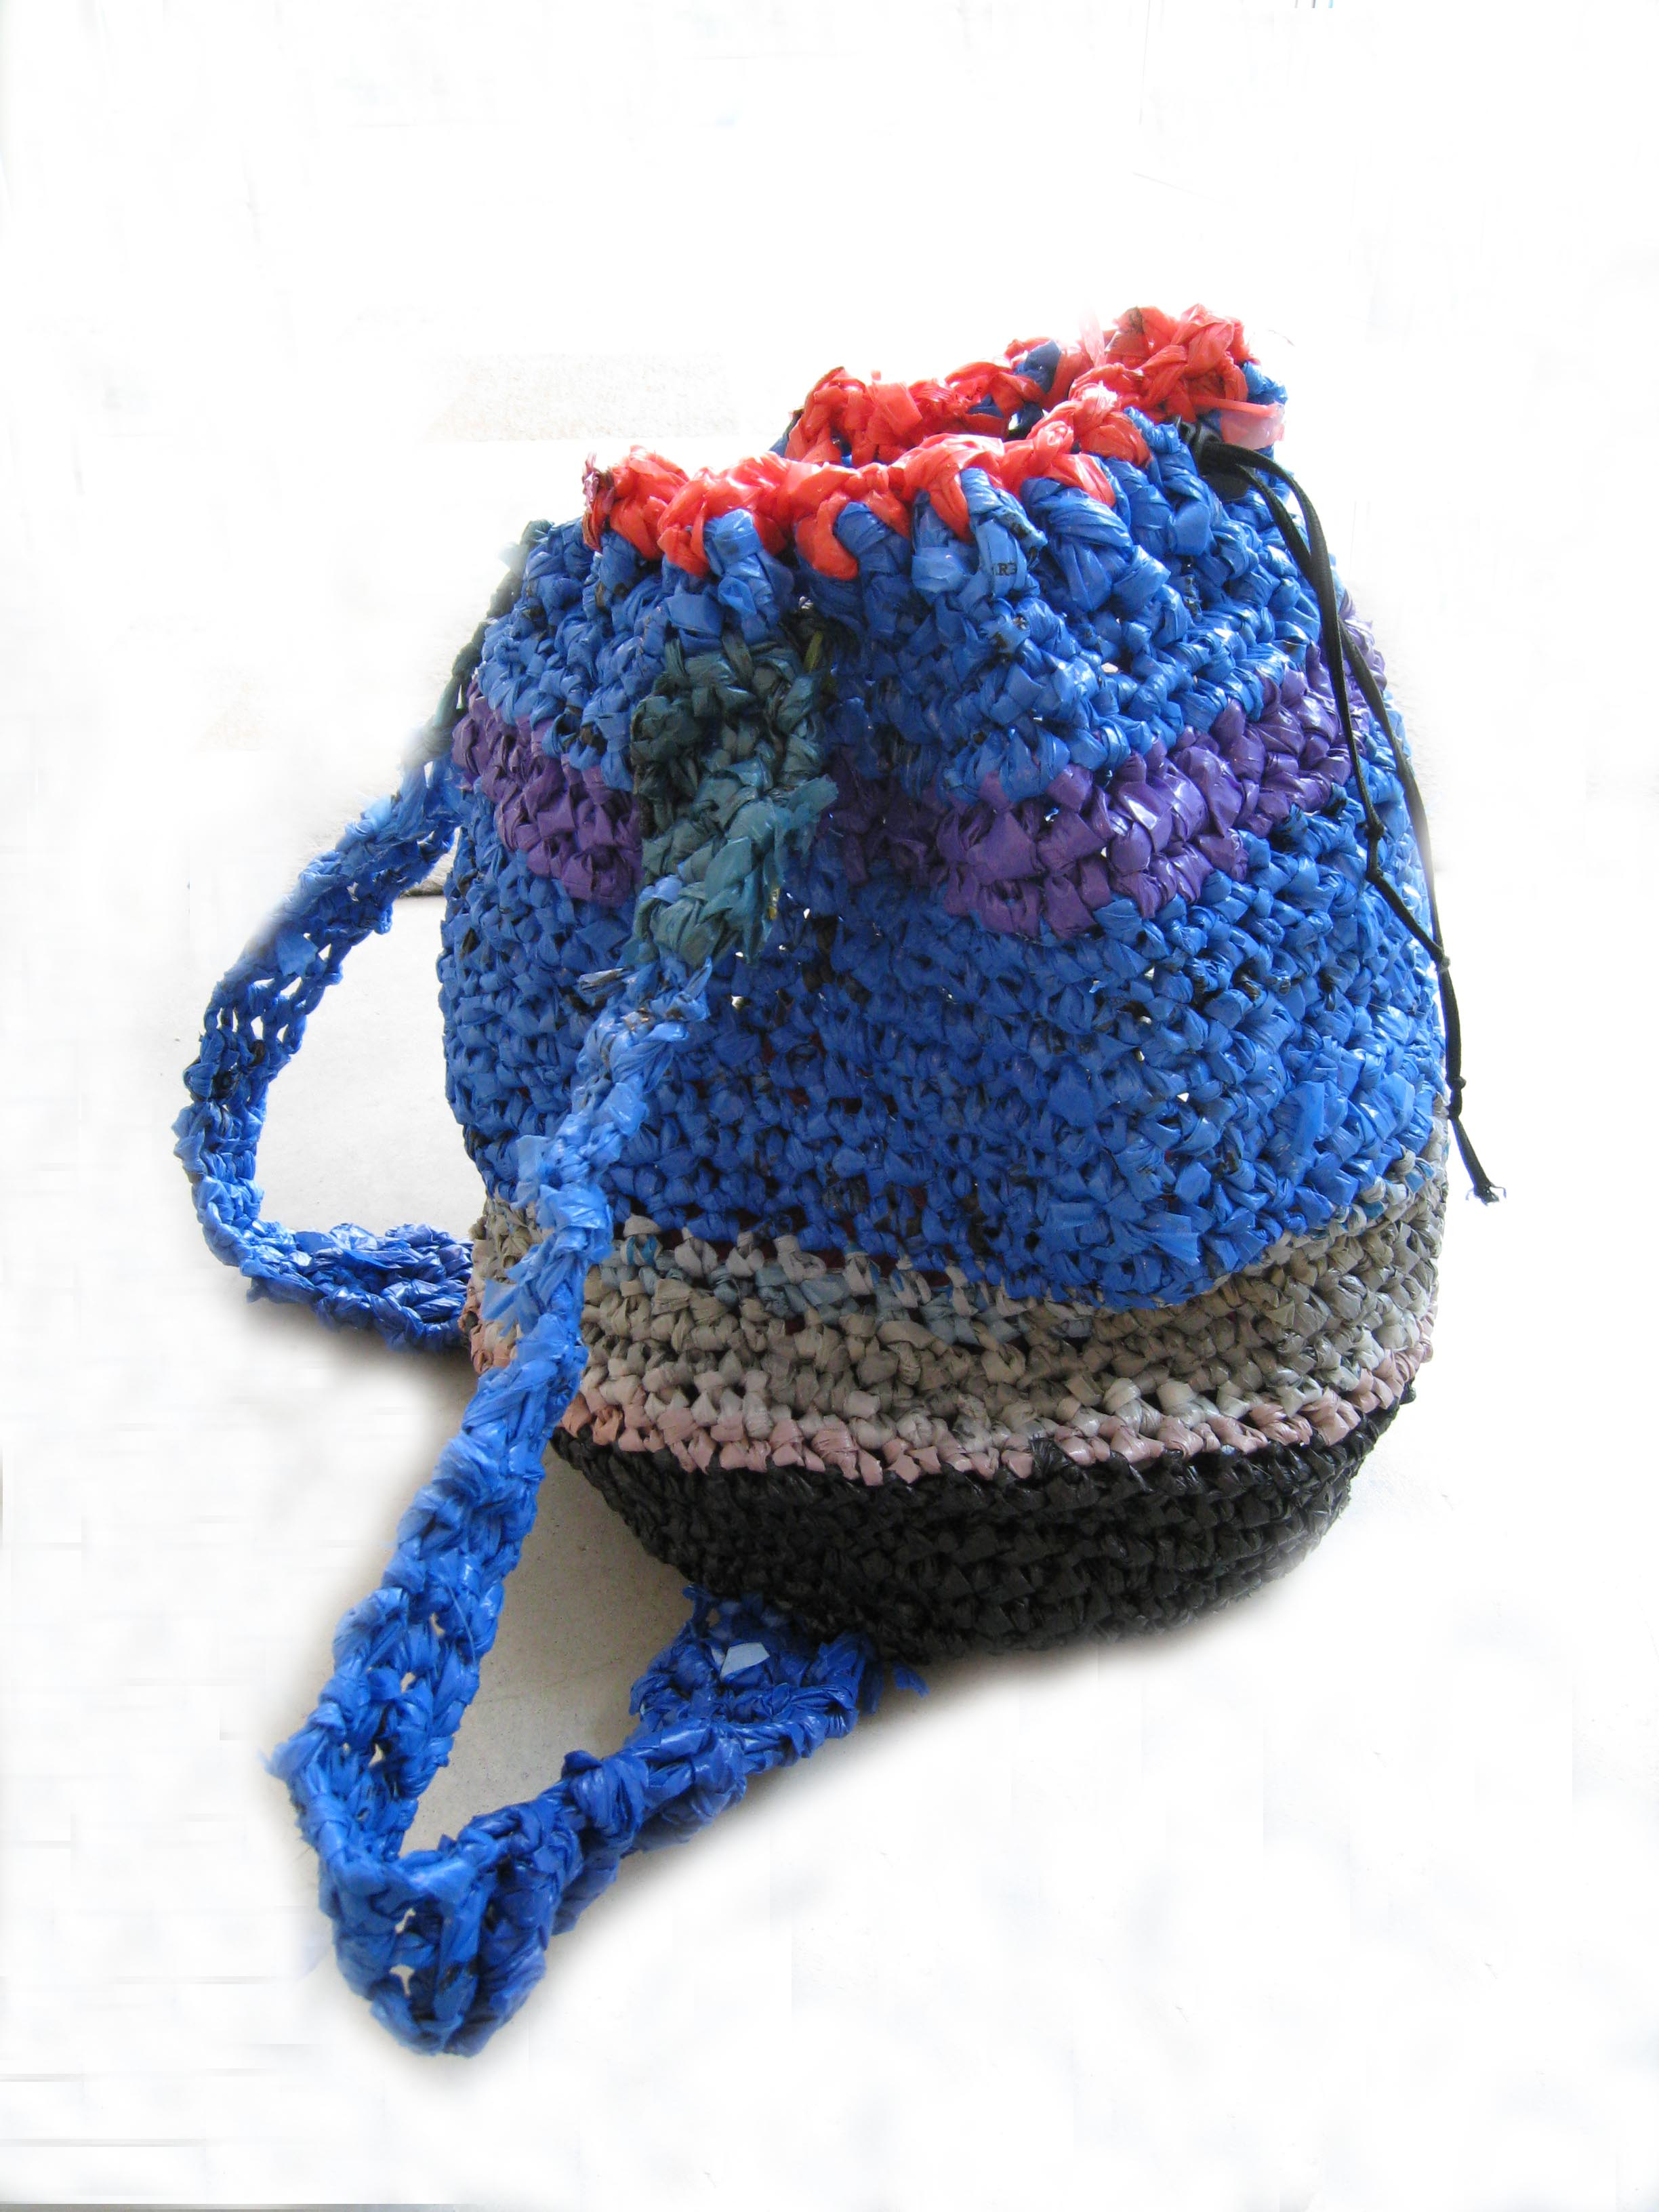 plastic-bag-crochet-backpack-10.jpg